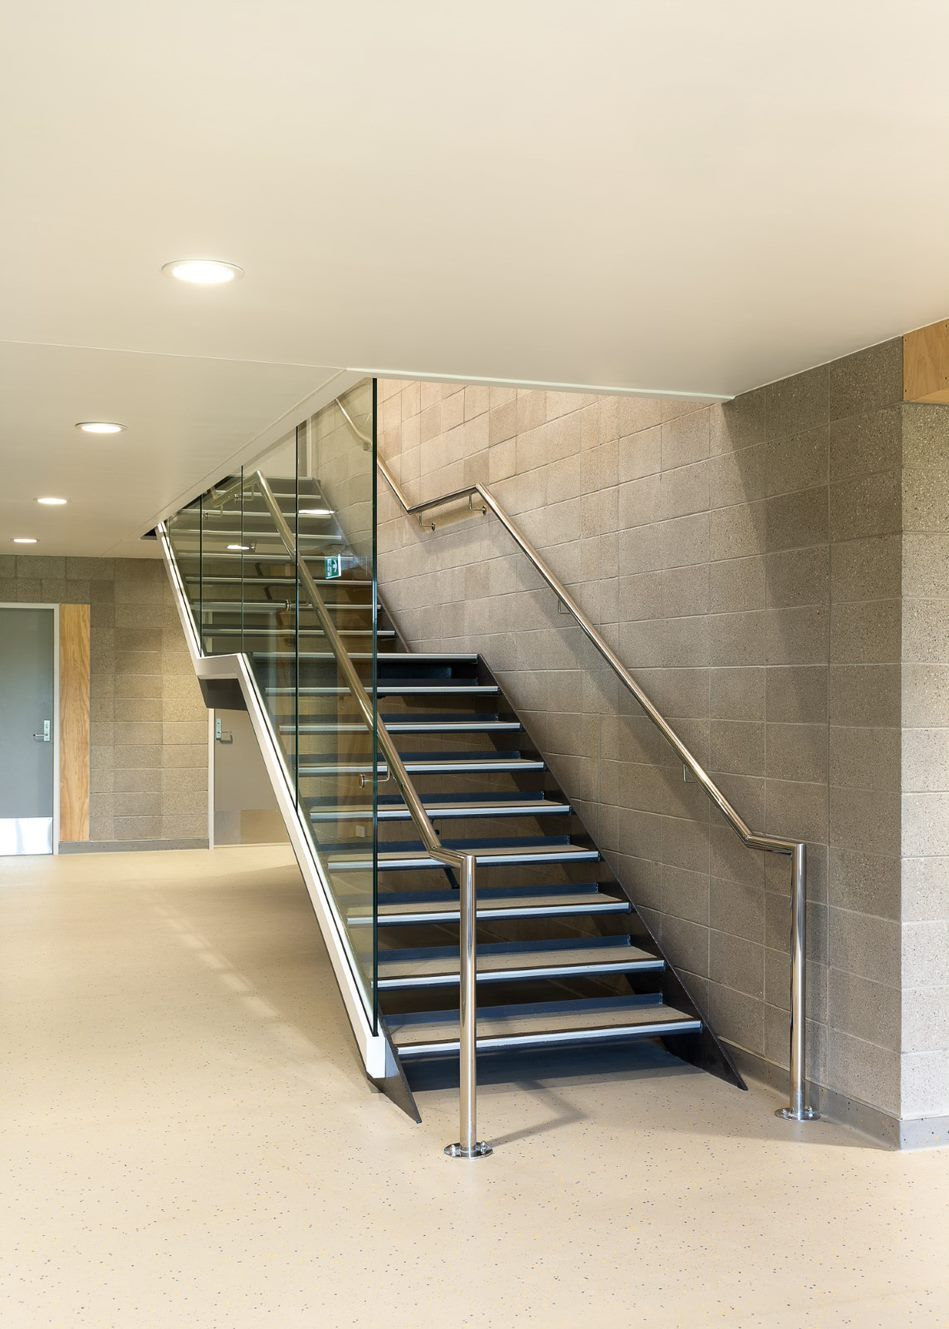 Dilworth sports centre internal stair case